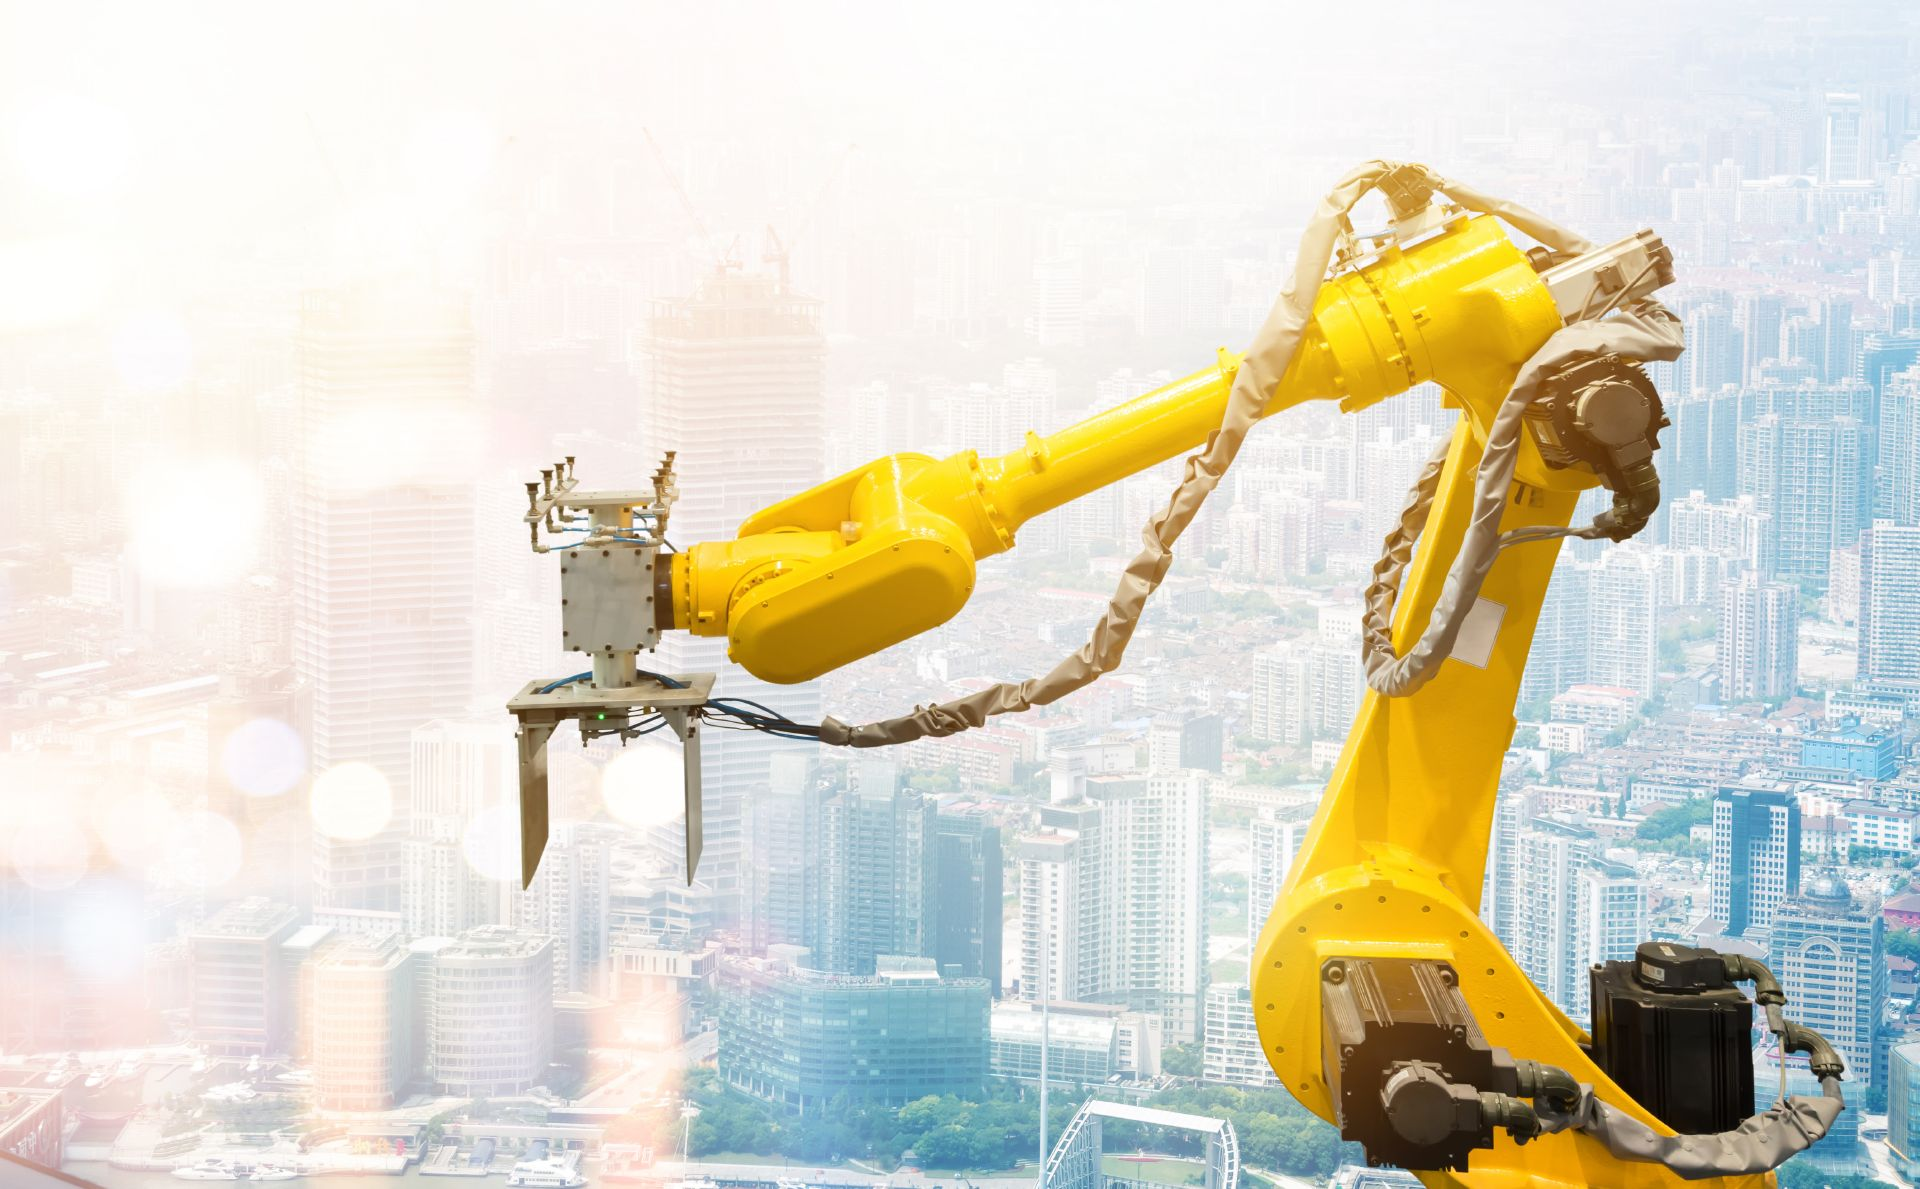 Robotic arm machine for heavy automation in smart industry